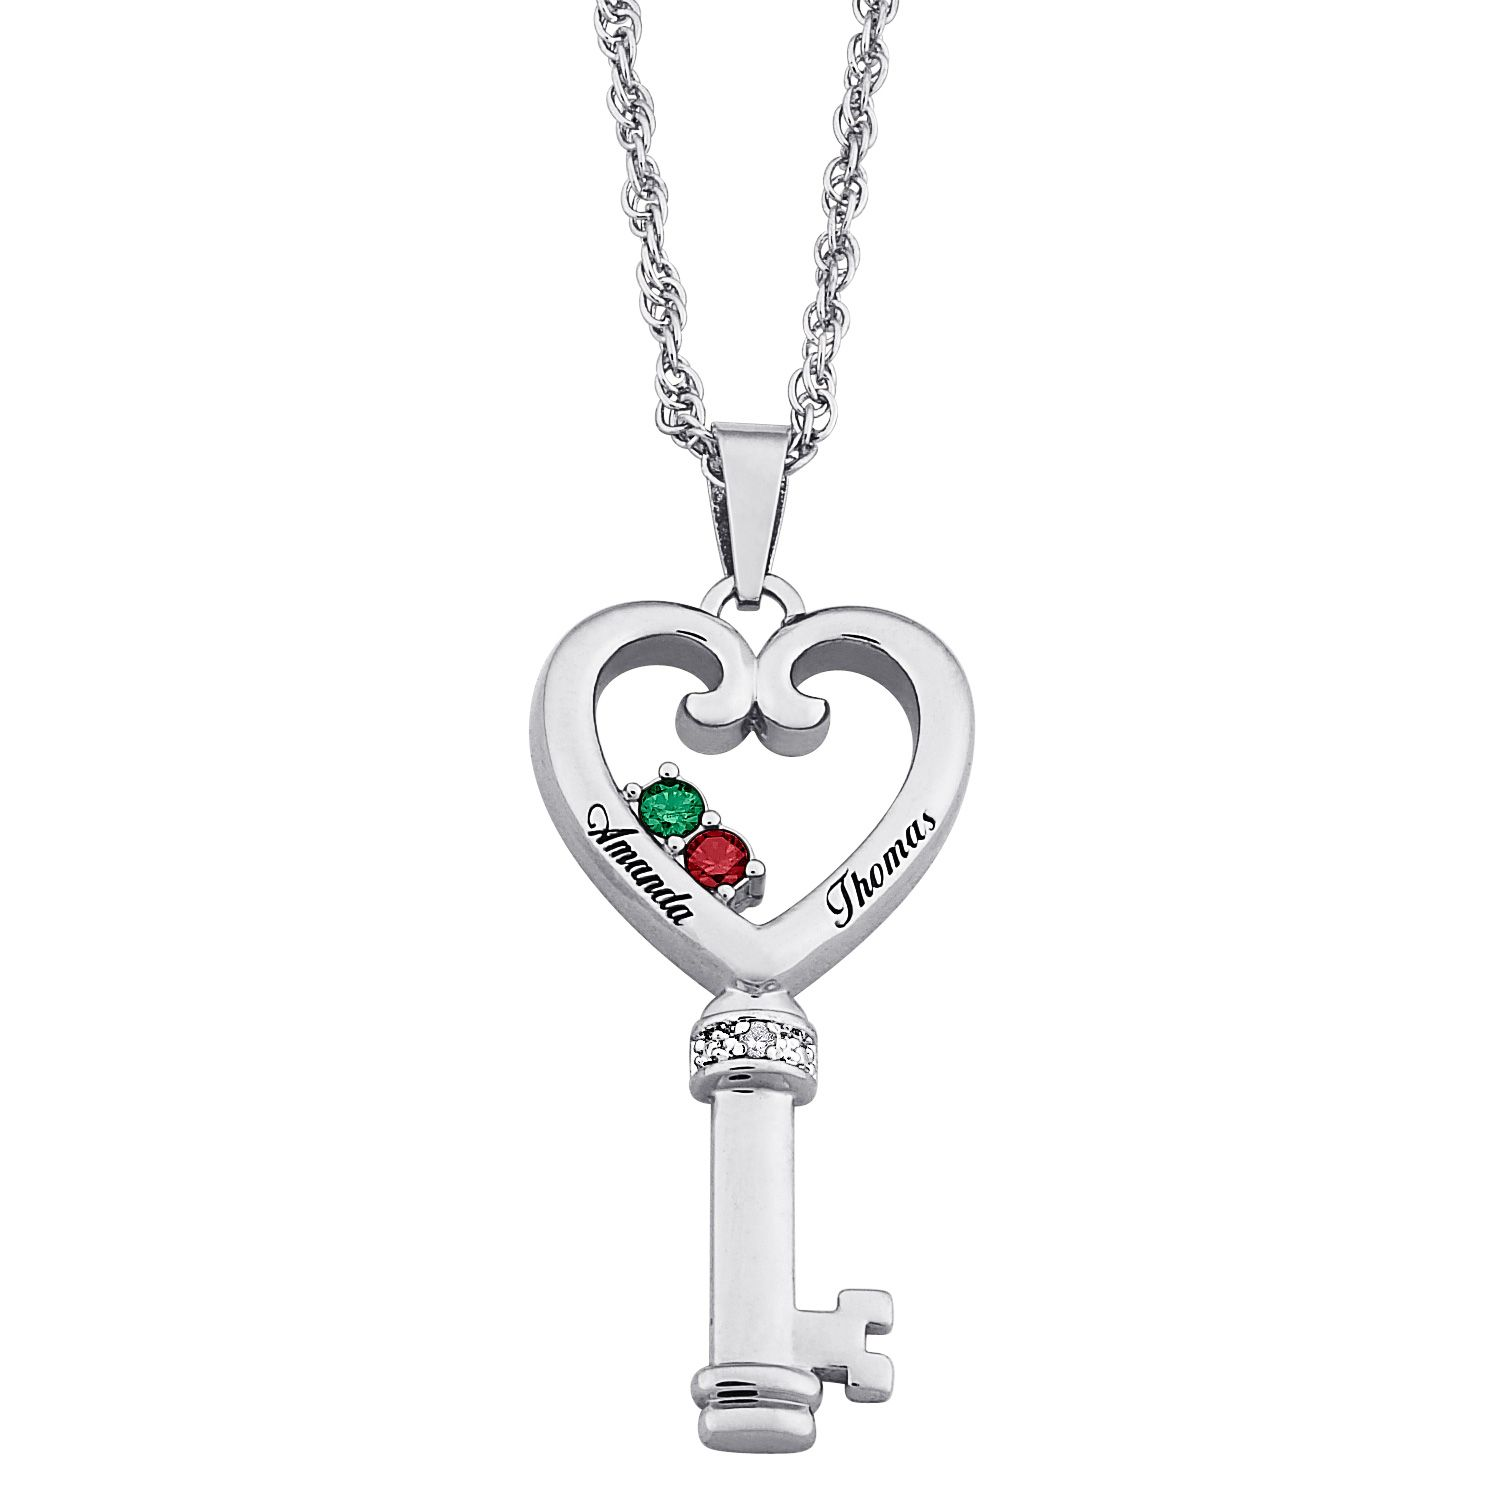 Couples name u birthstone heart key necklace with diamond accent